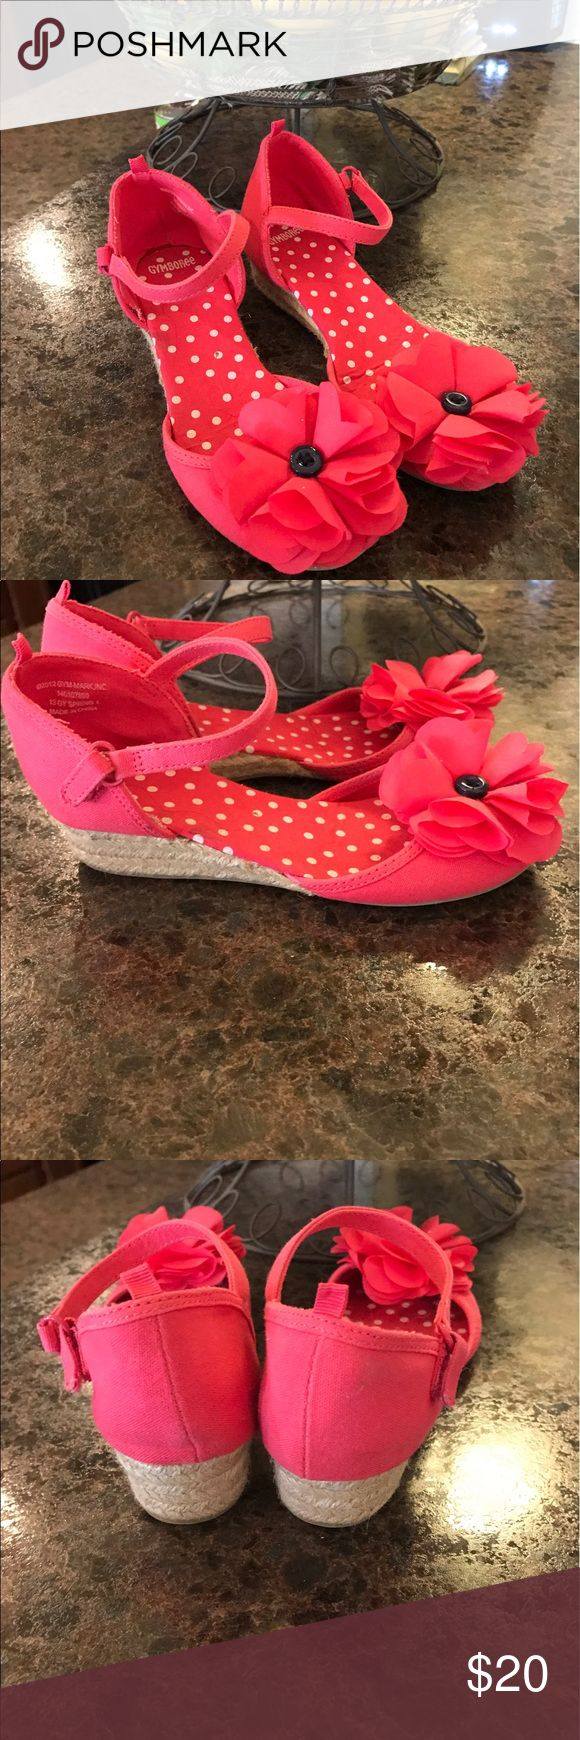 Girls wedge shoes. Gymboree size 13 These are sooo cute! My daughter wore them a few times for pictures. Gymboree brand. Size 13 in excellent condition. Gymboree Shoes